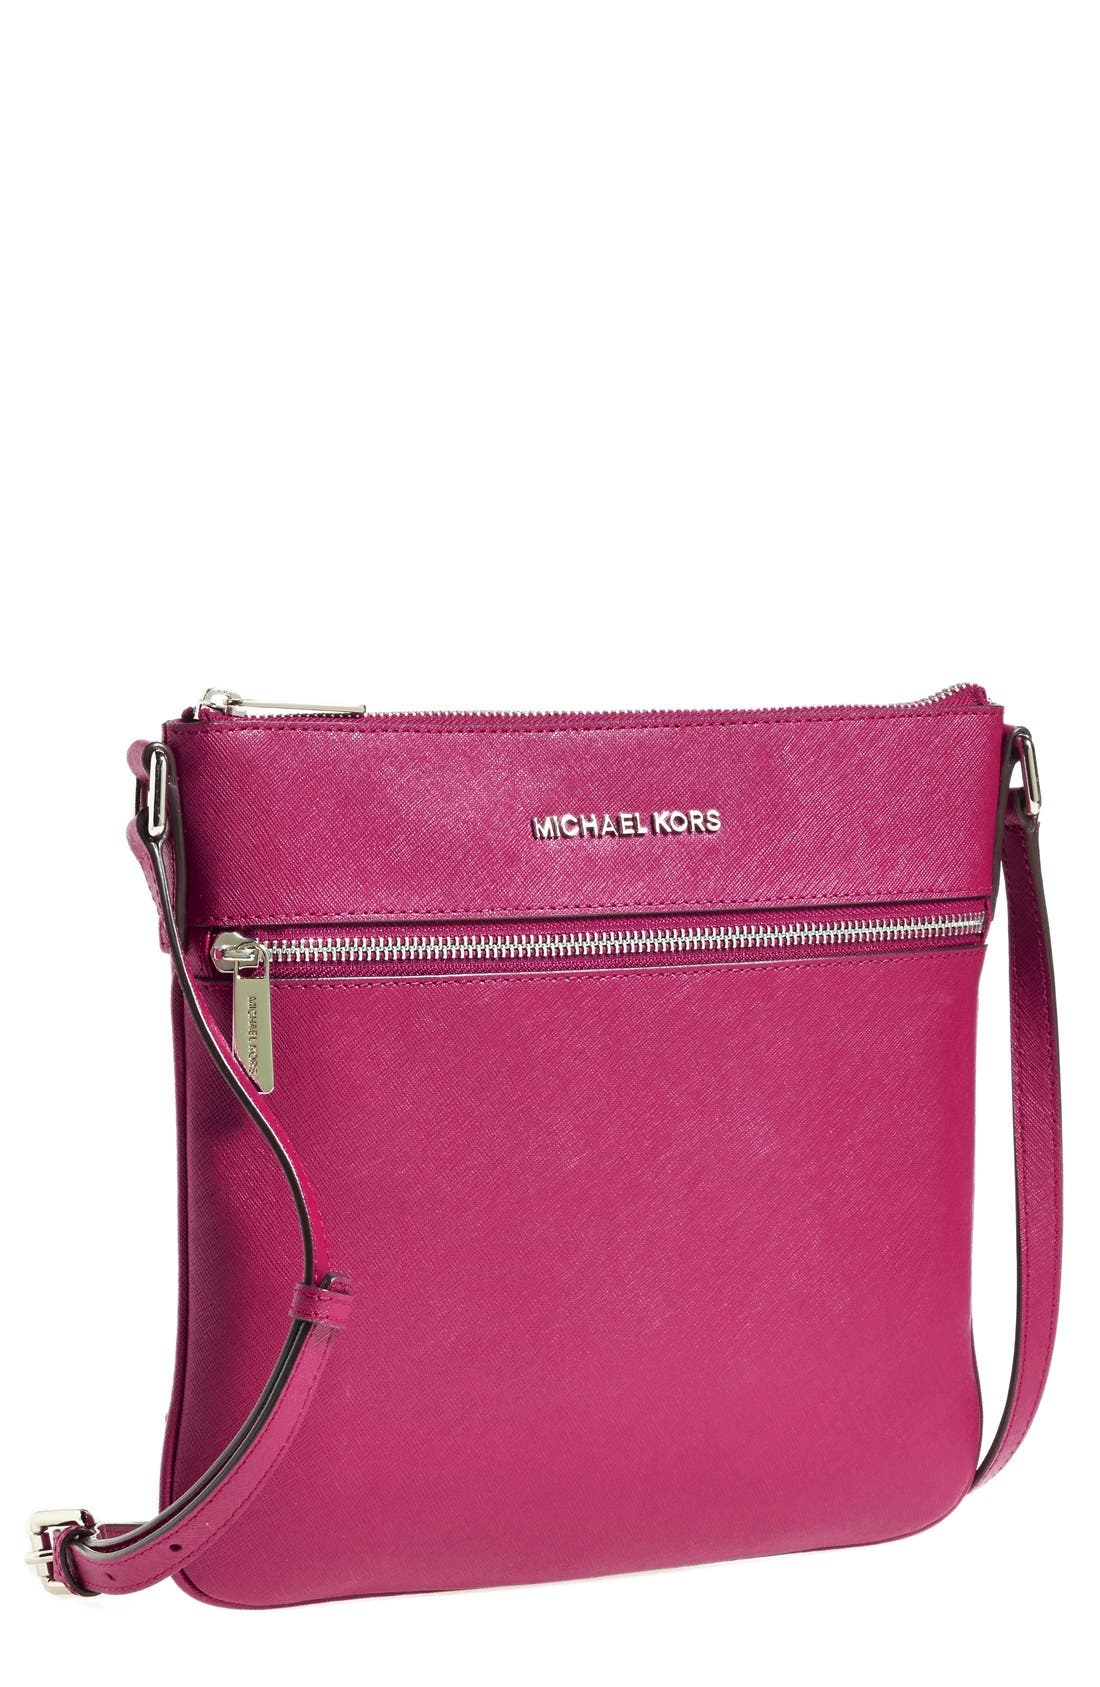 Main Image - MICHAEL Michael Kors 'Bedford' Saffiano Leather Crossbody Bag (Nordstrom Exclusive)